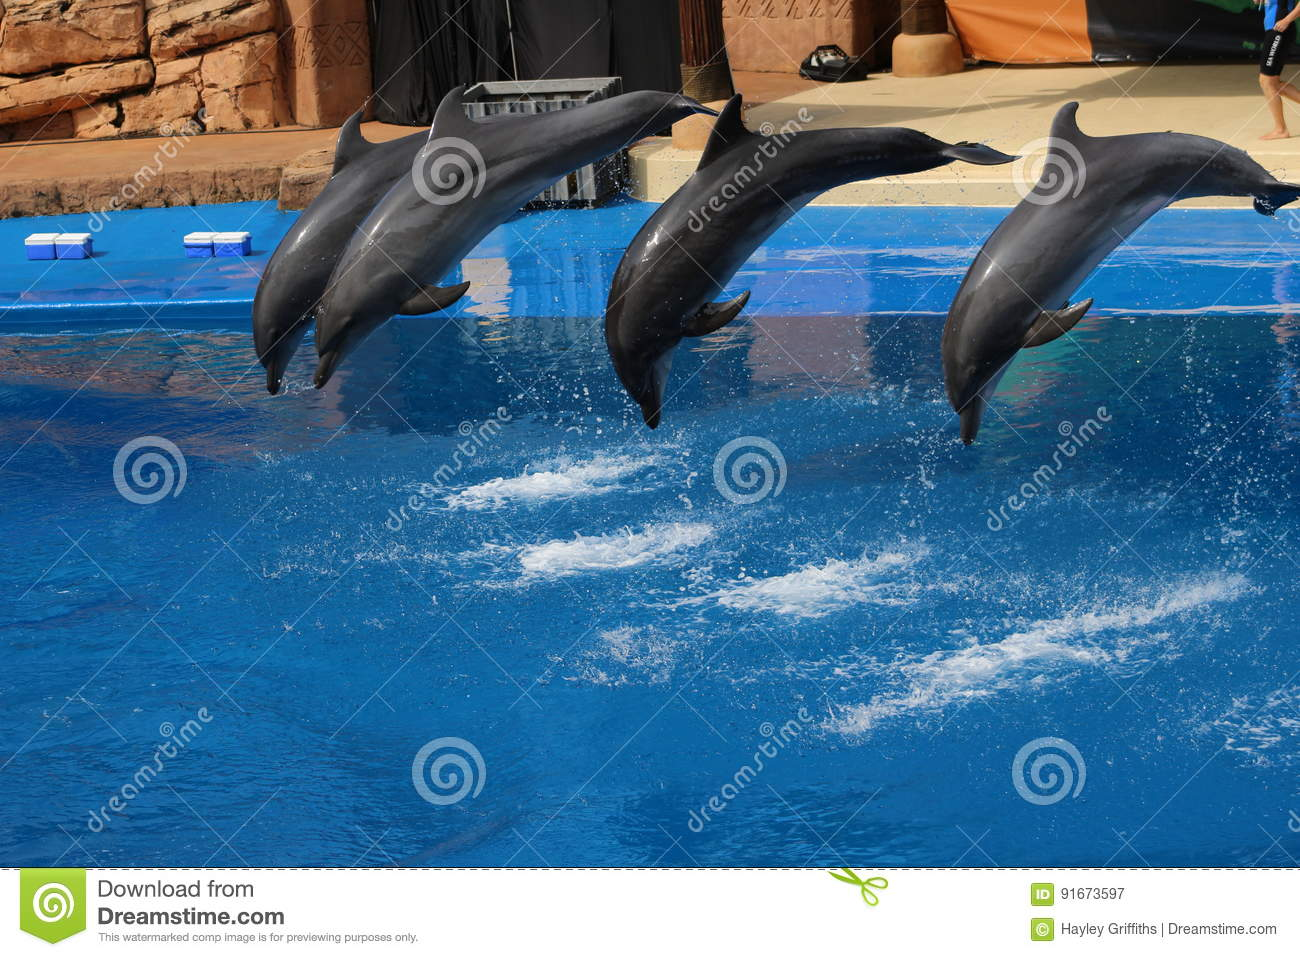 Four dolphins jumping in a pool